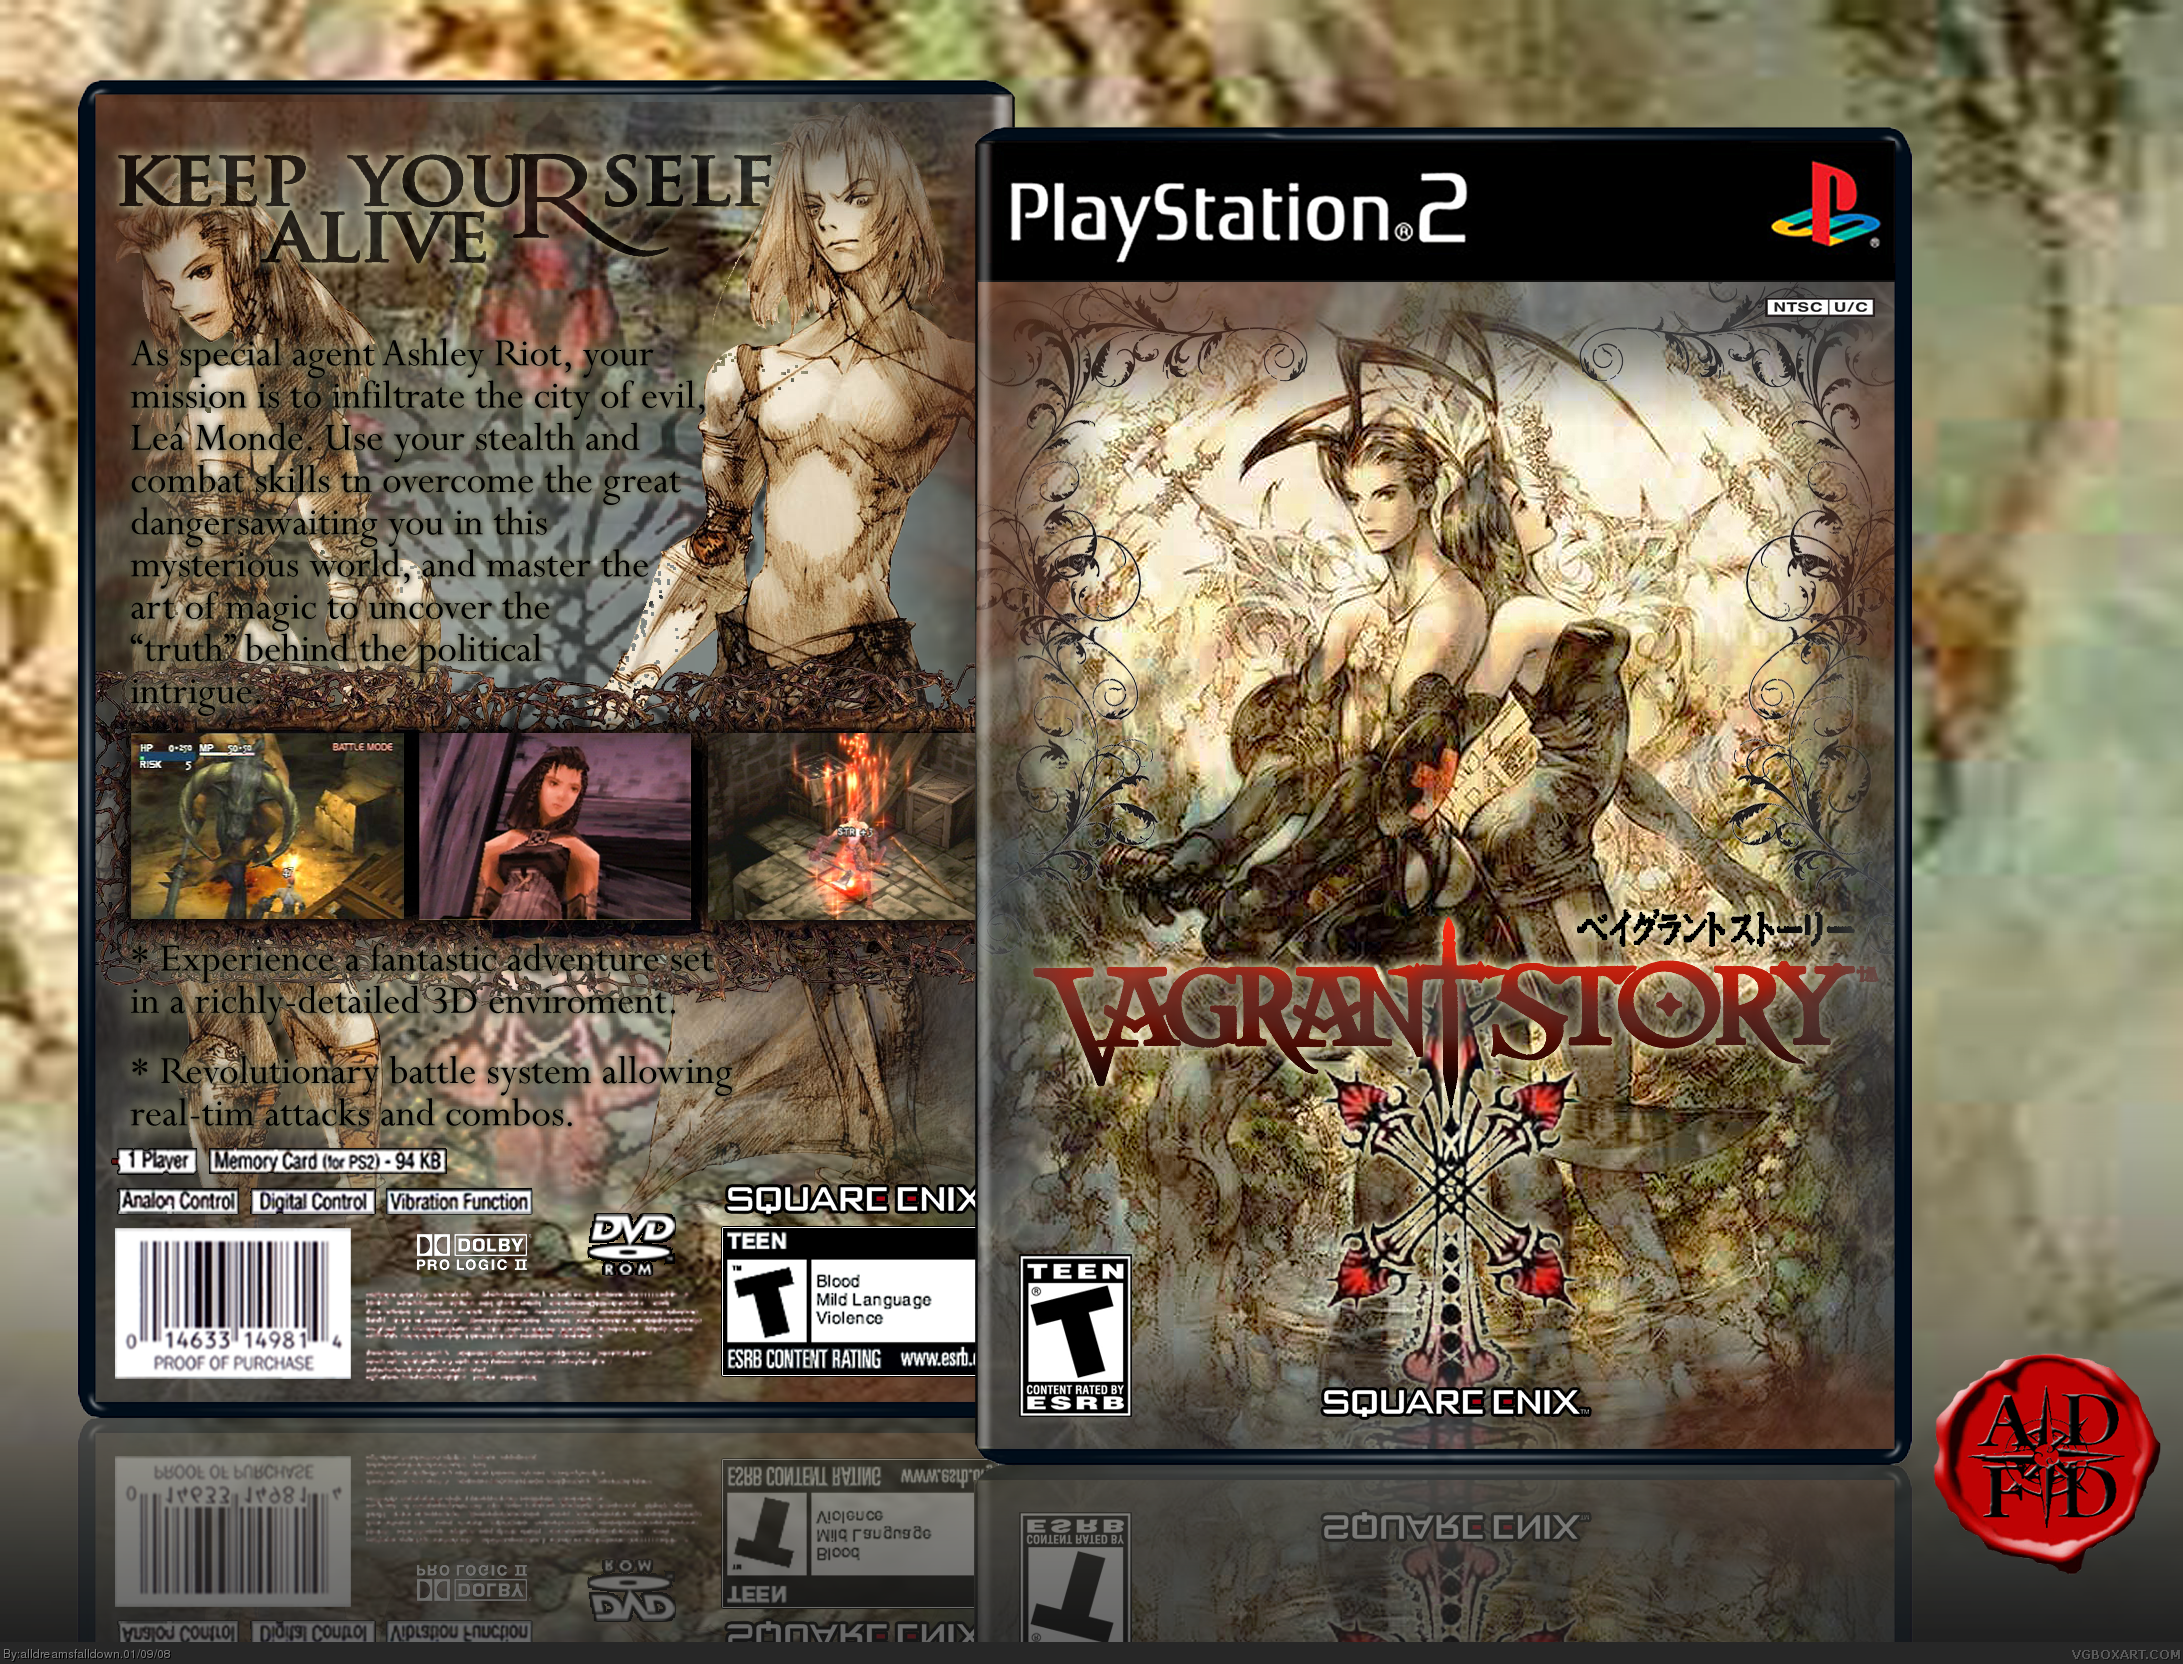 Vagrant Story Images Crazy Gallery 2183x1664